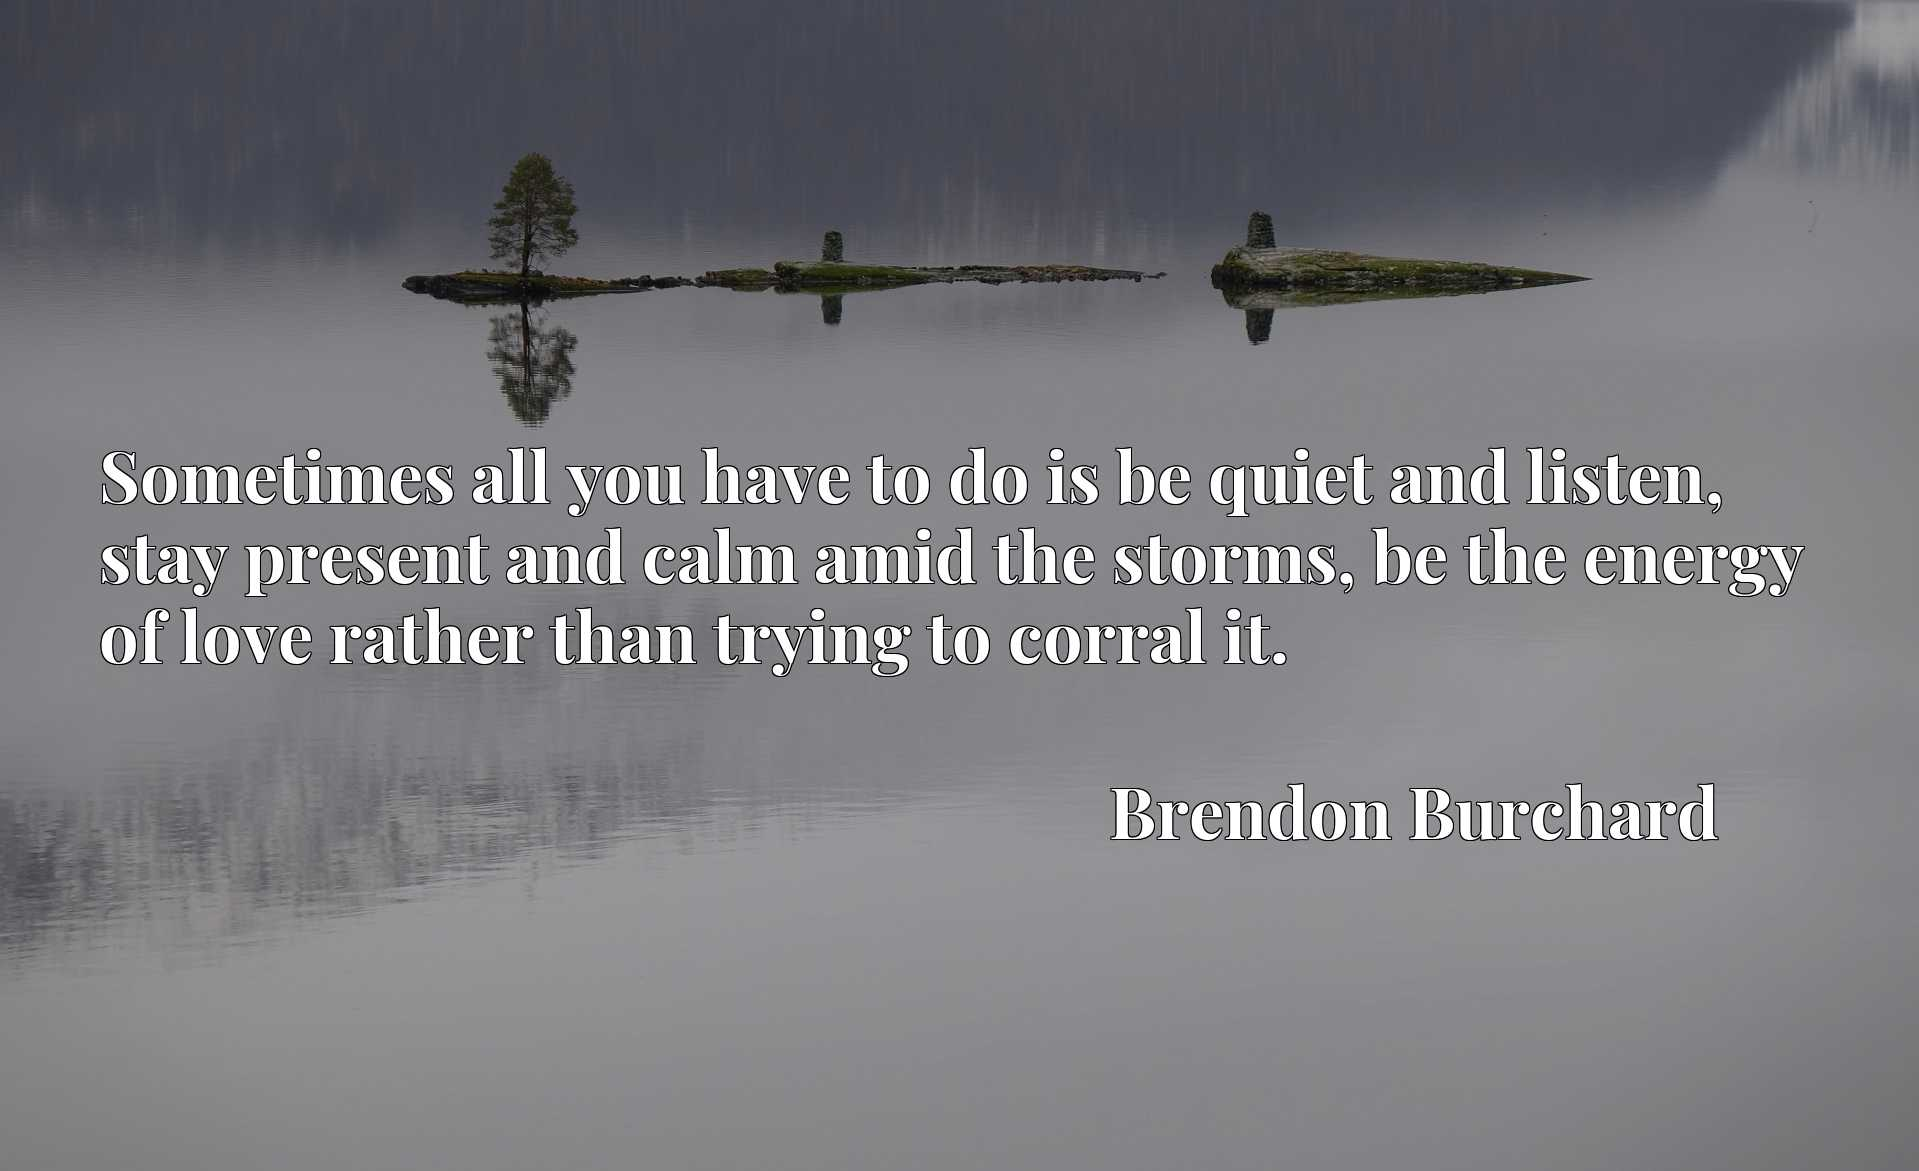 Quote Picture :Sometimes all you have to do is be quiet and listen, stay present and calm amid the storms, be the energy of love rather than trying to corral it.